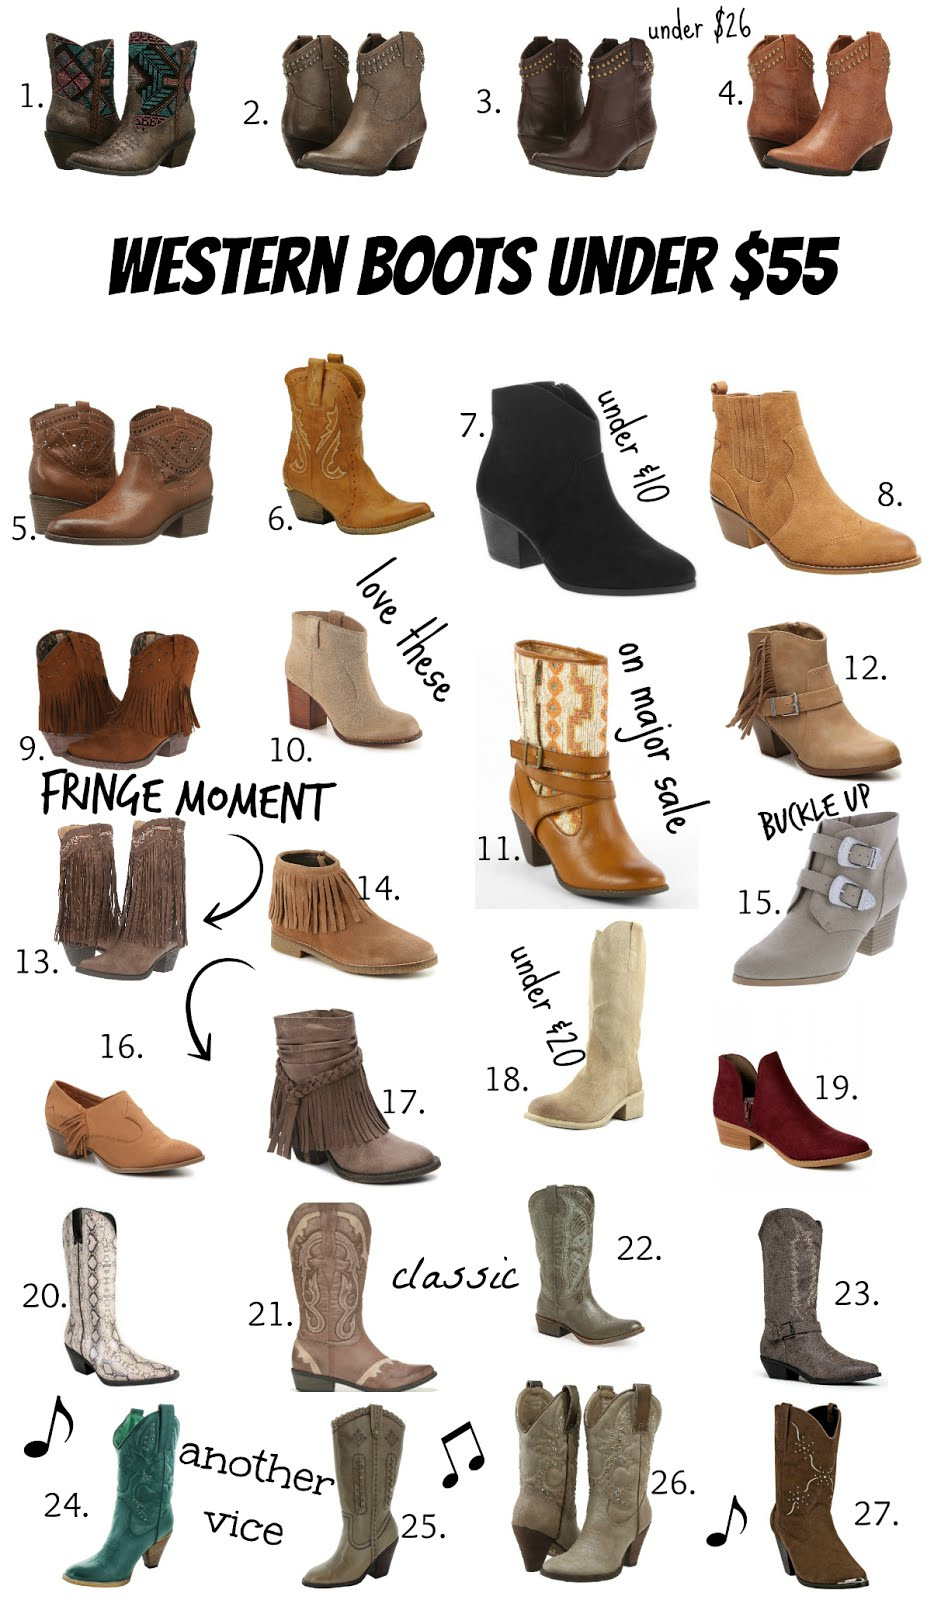 cheap cowgirl boots. cowgirl boots for women. womens cowgirl boots. cowgirl boots.cute cowgirl boots.